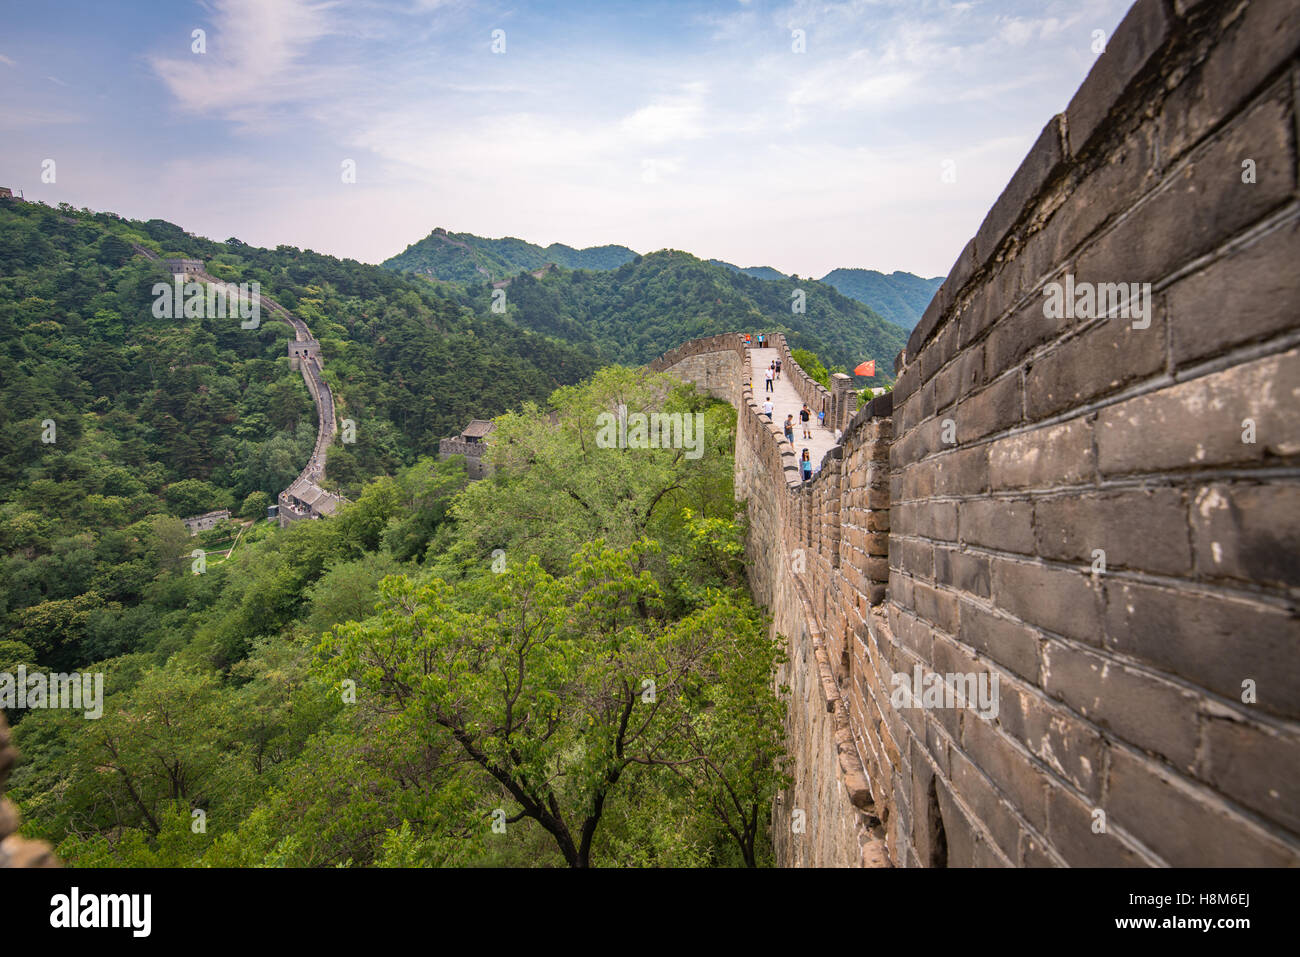 Mutianyu, China - Landscape view of tourists taking pictures and walking on the Great Wall of China. The wall stretches - Stock Image